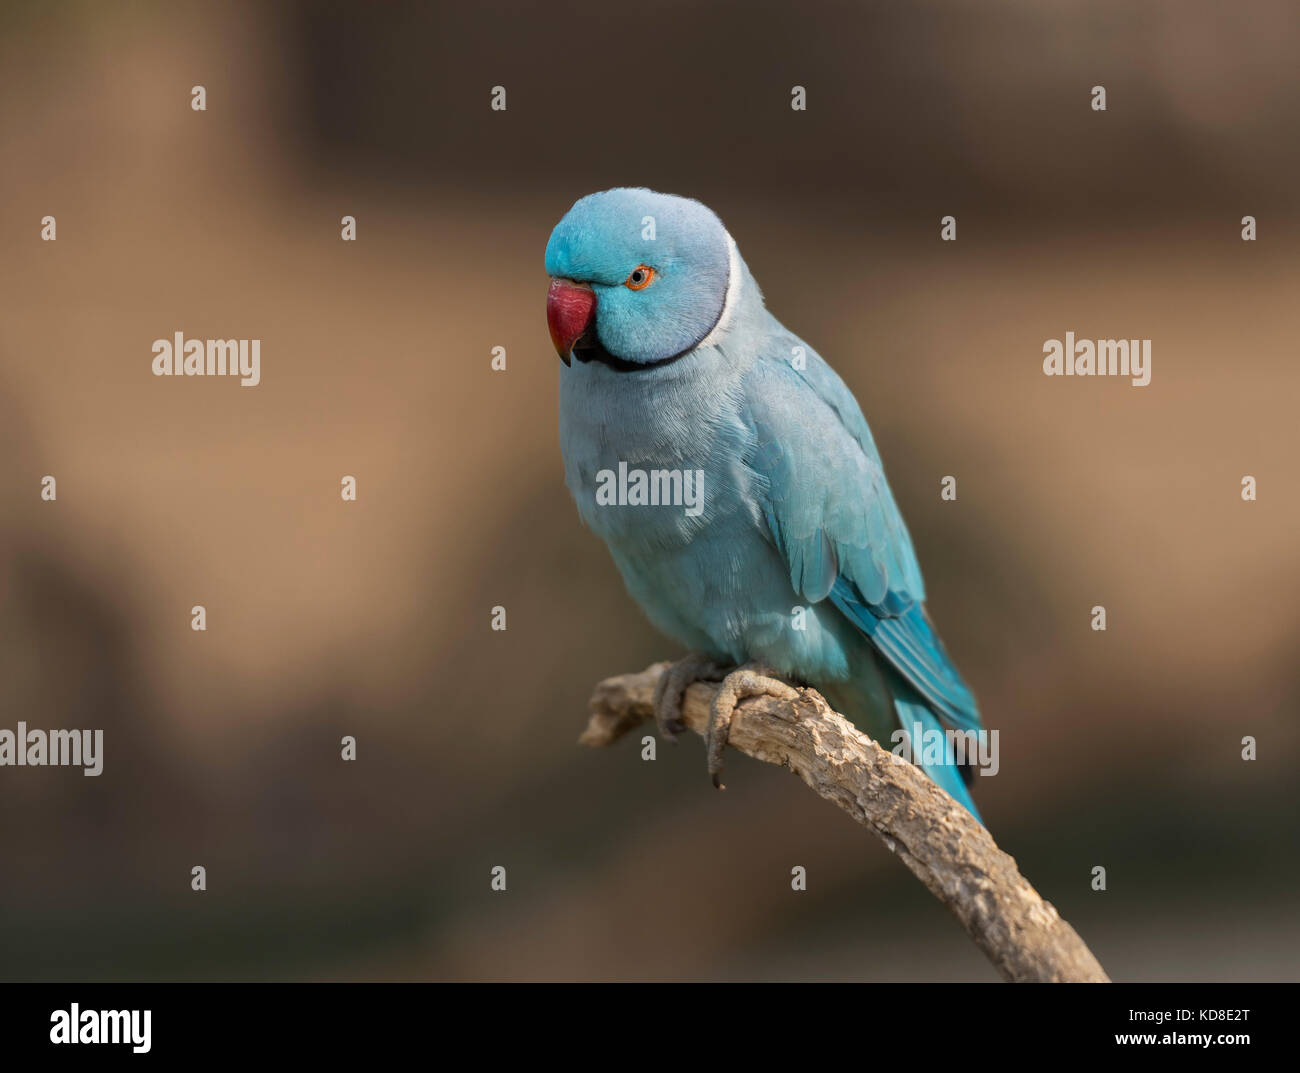 A beautiful Indian blue ring-necked parrot sitting on a perch. - Stock Image